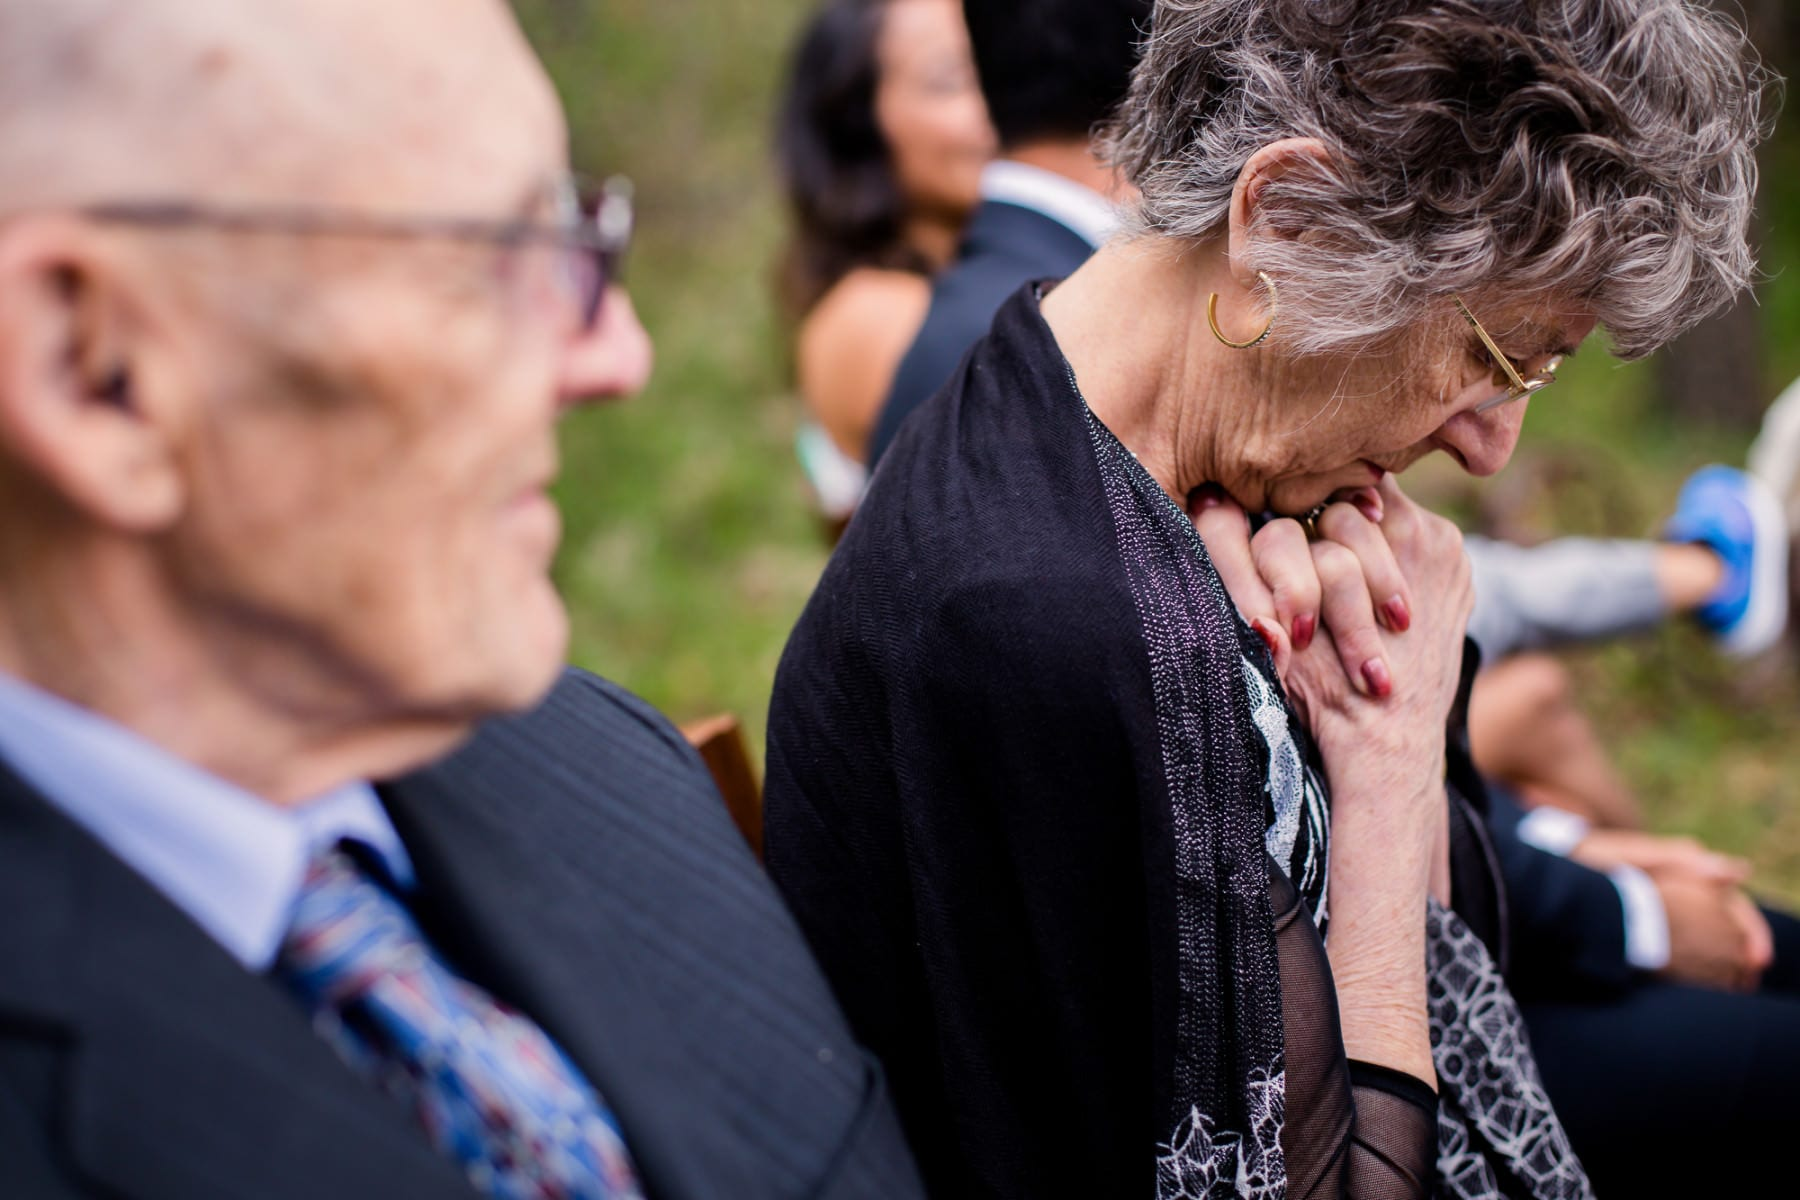 Mackenzie Miller Yoga wedding in Alberta, Canada (67)